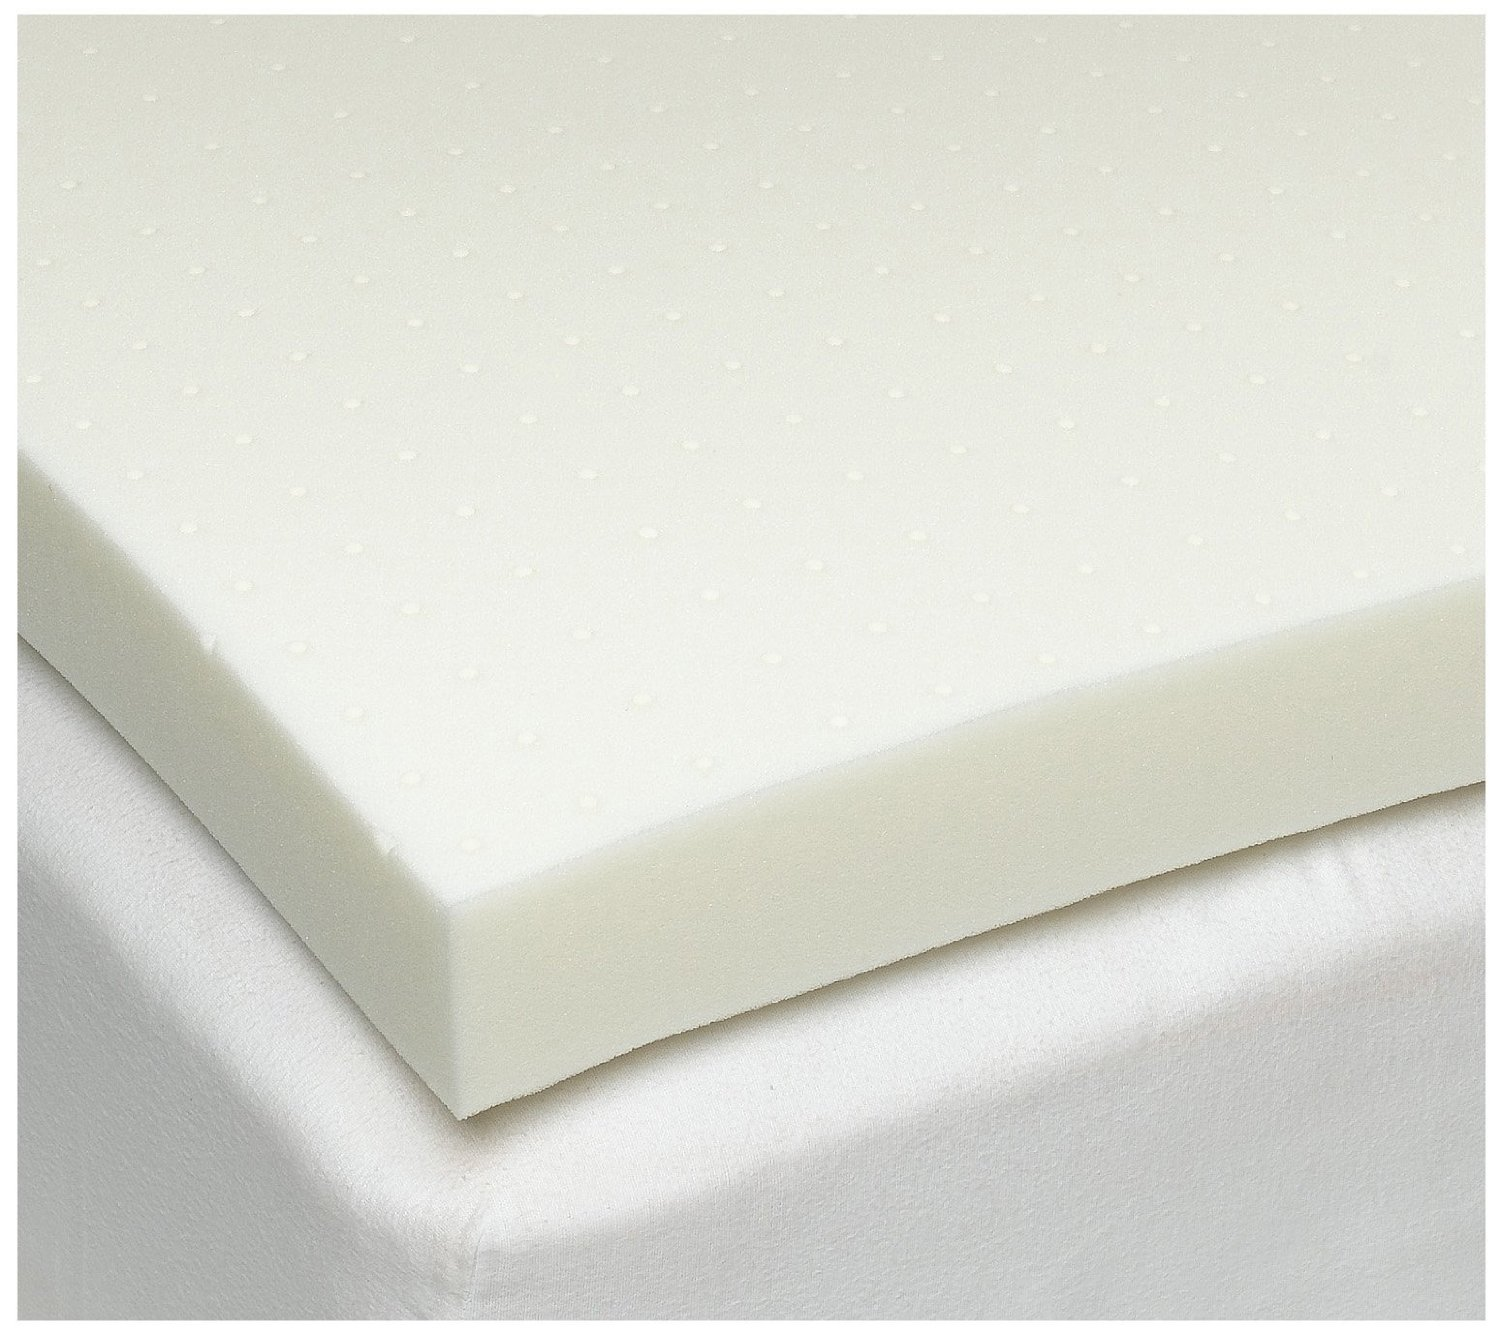 The sleep joy 4 inch ventilated memory foam mattress topper review 4 memory foam mattress topper